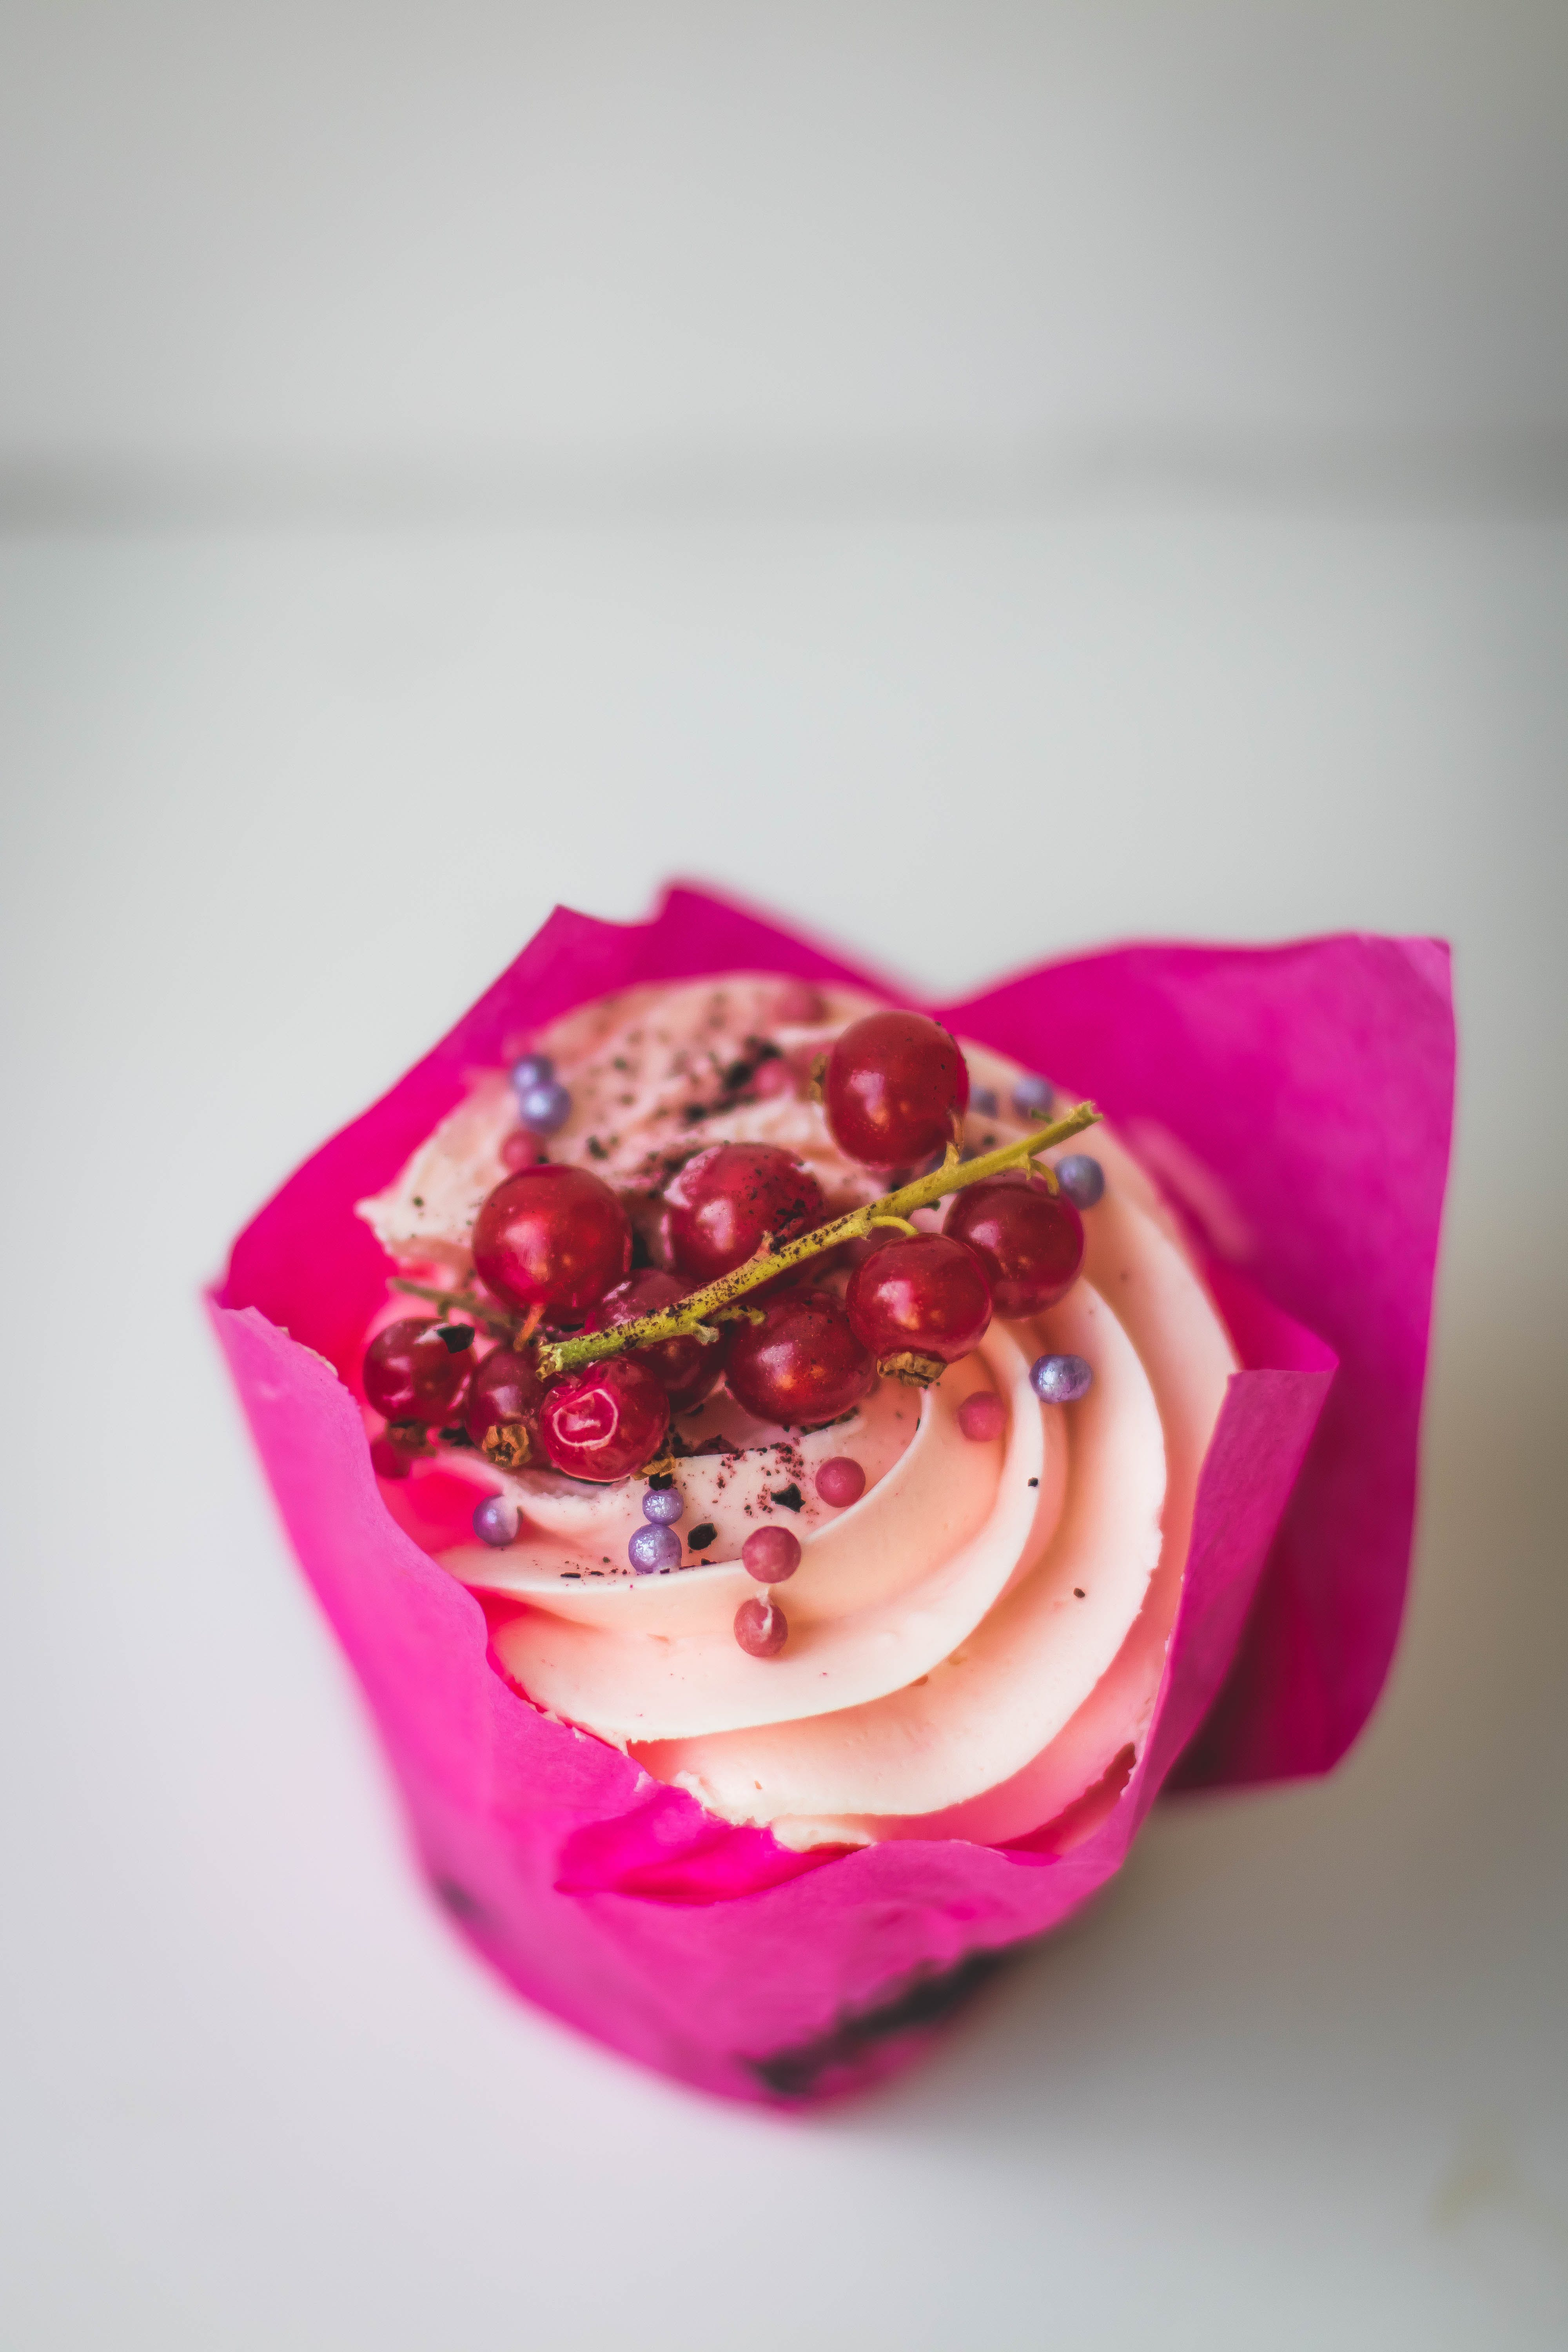 Cupcake With Red Berries on Top